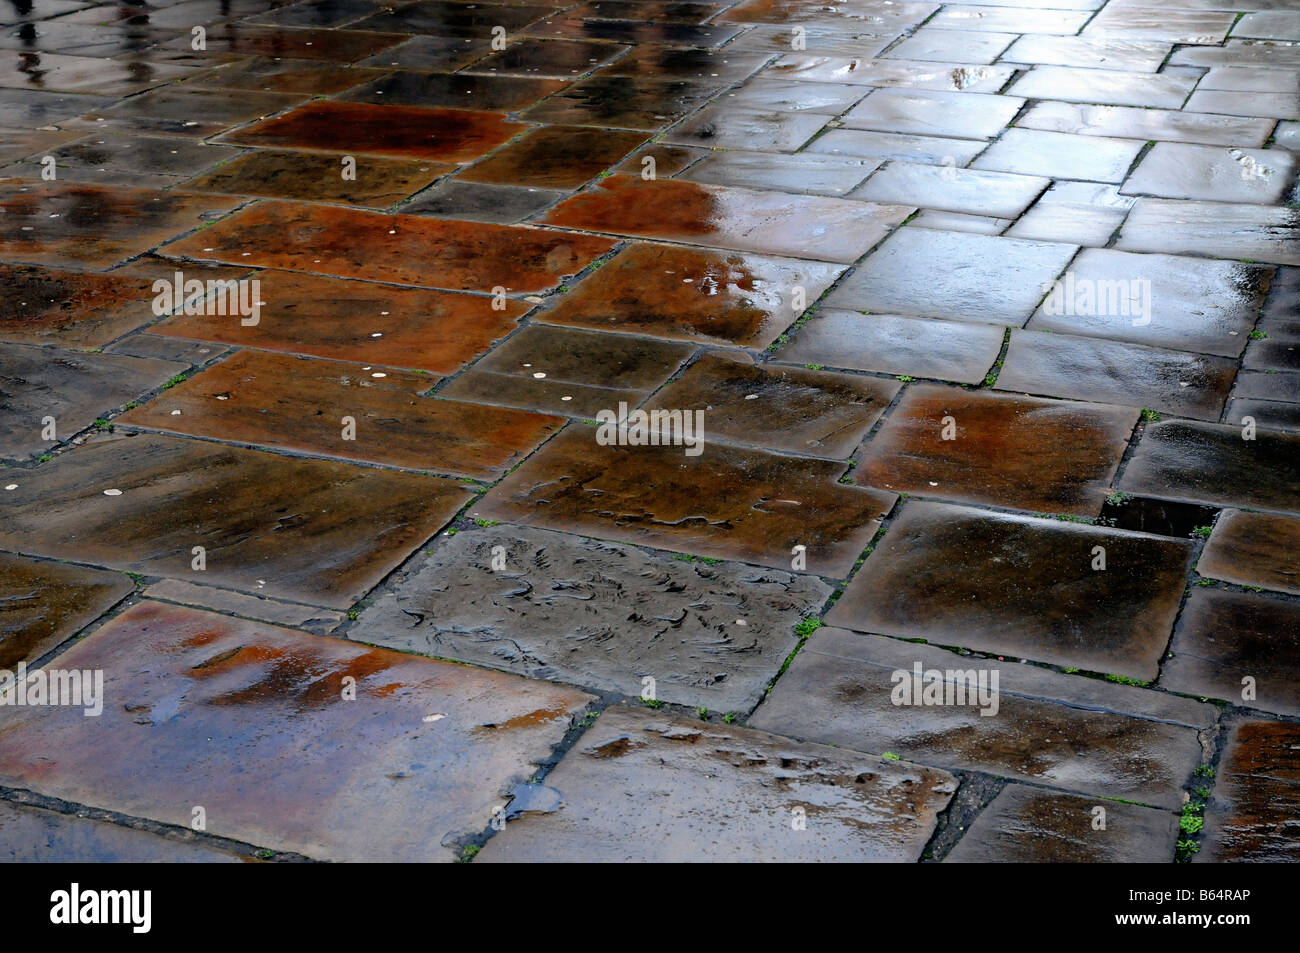 A flagstone pavement shines in the aftermath of a rain storm - Stock Image